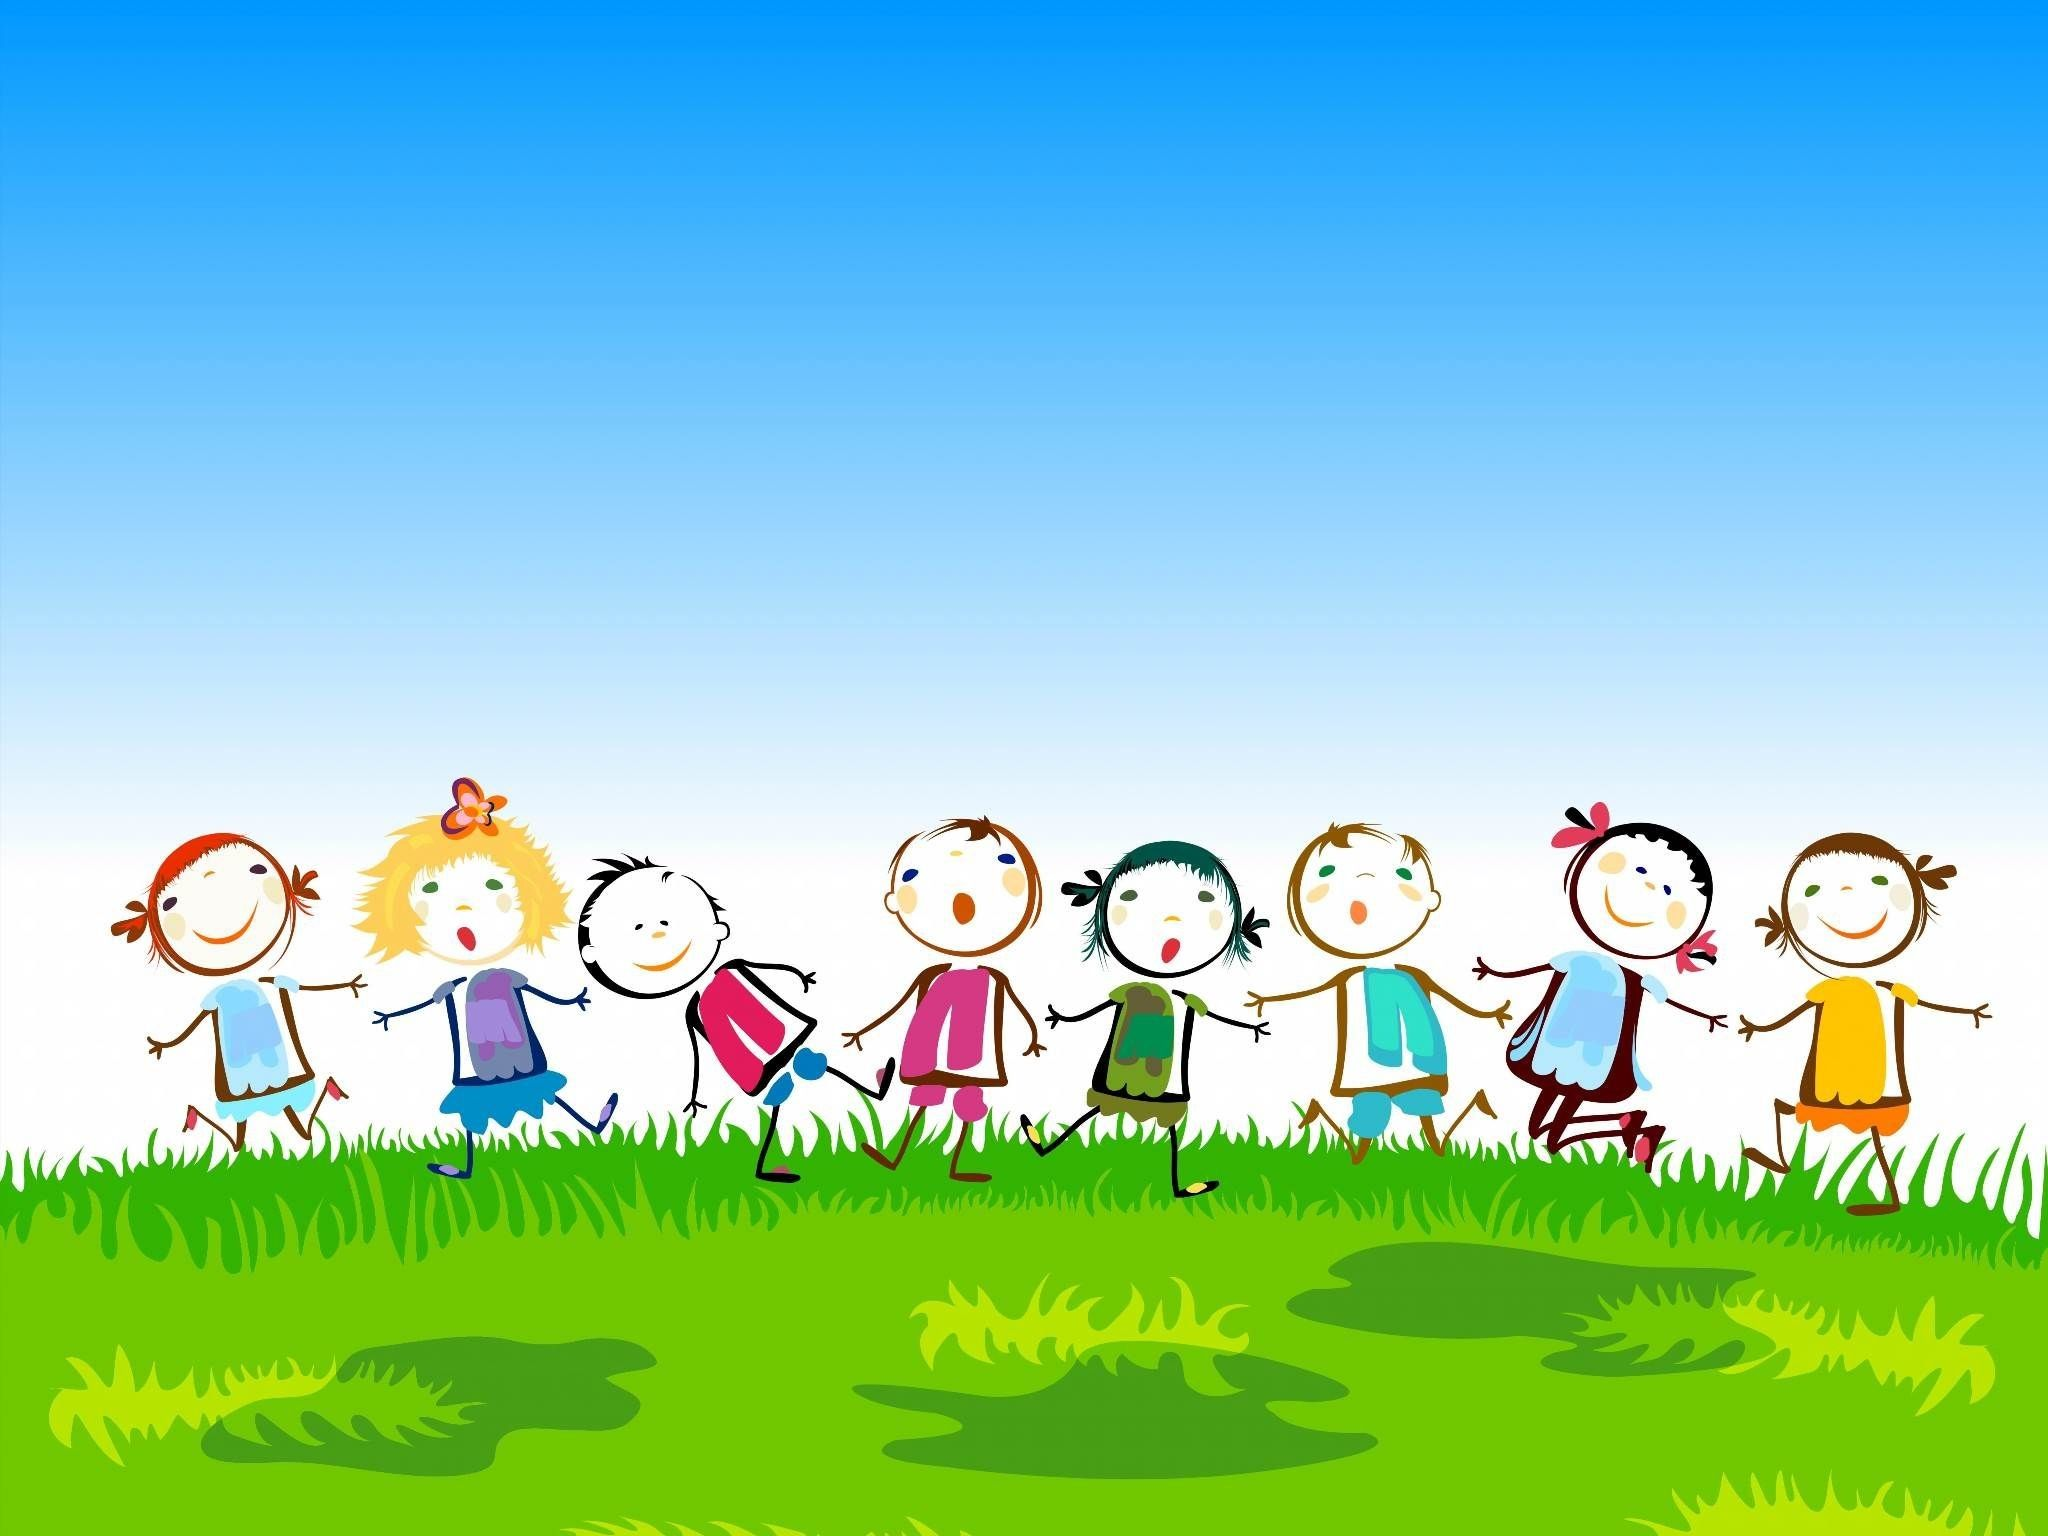 45 Children Background Wallpapers On Wallpaperplay Kids Background Kids Wallpaper Child Wallpaper Hd